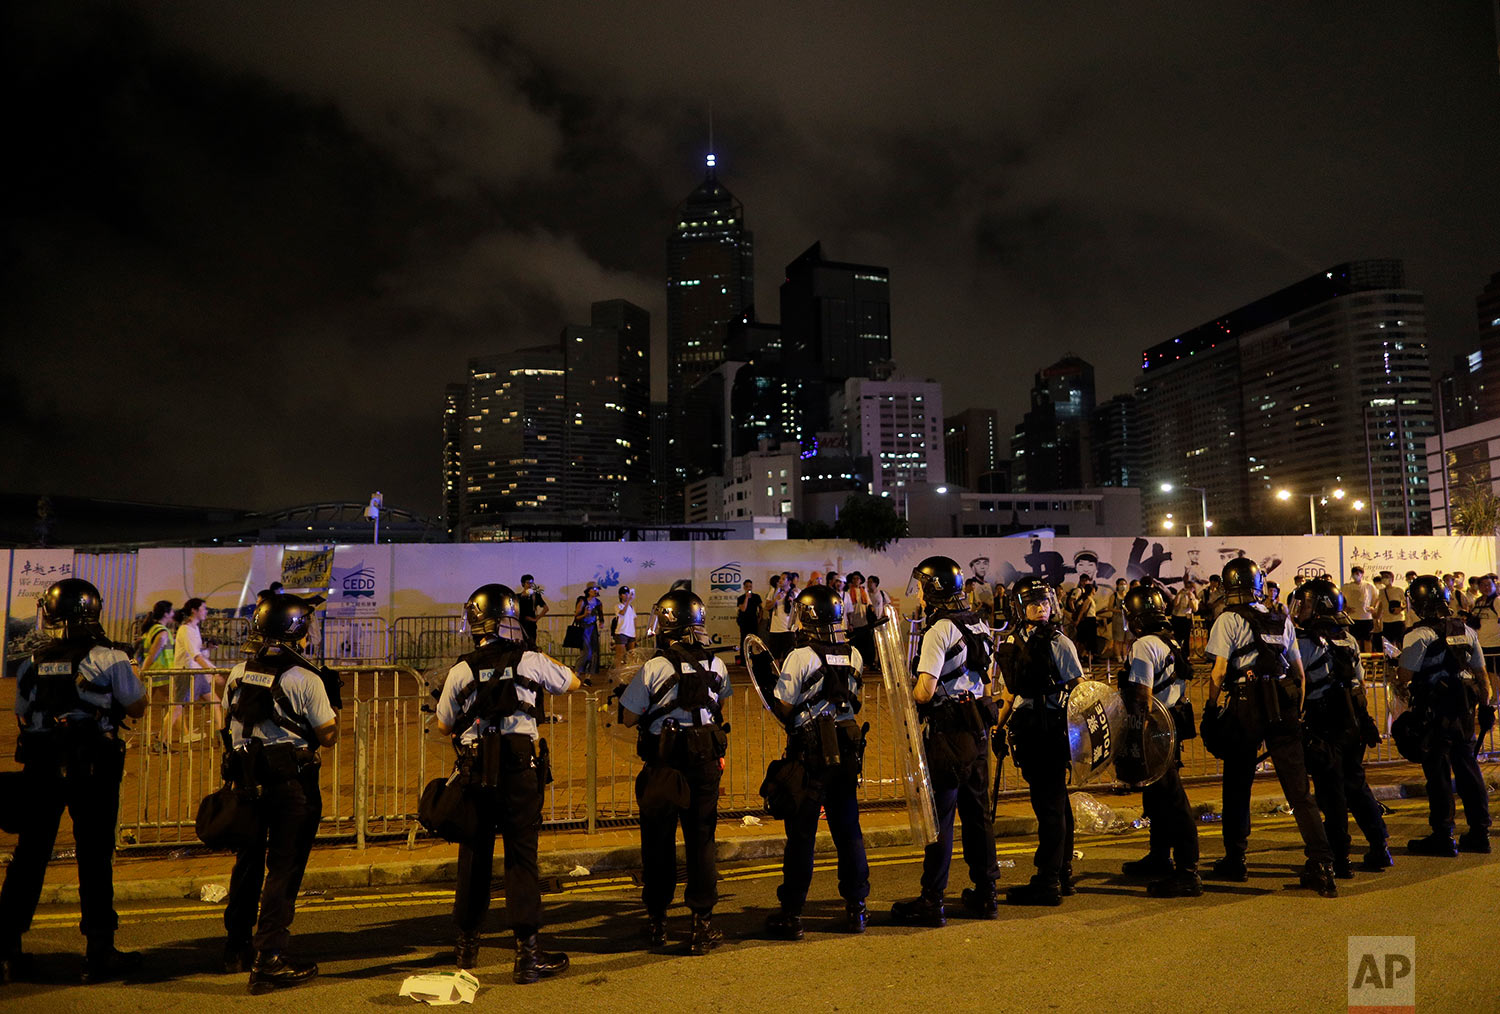 Police officers stand guard against protesters in a rally against the proposed amendments to the extradition law at the Legislative Council in Hong Kong during the early hours of Monday, June 10, 2019. (AP Photo/Vincent Yu)